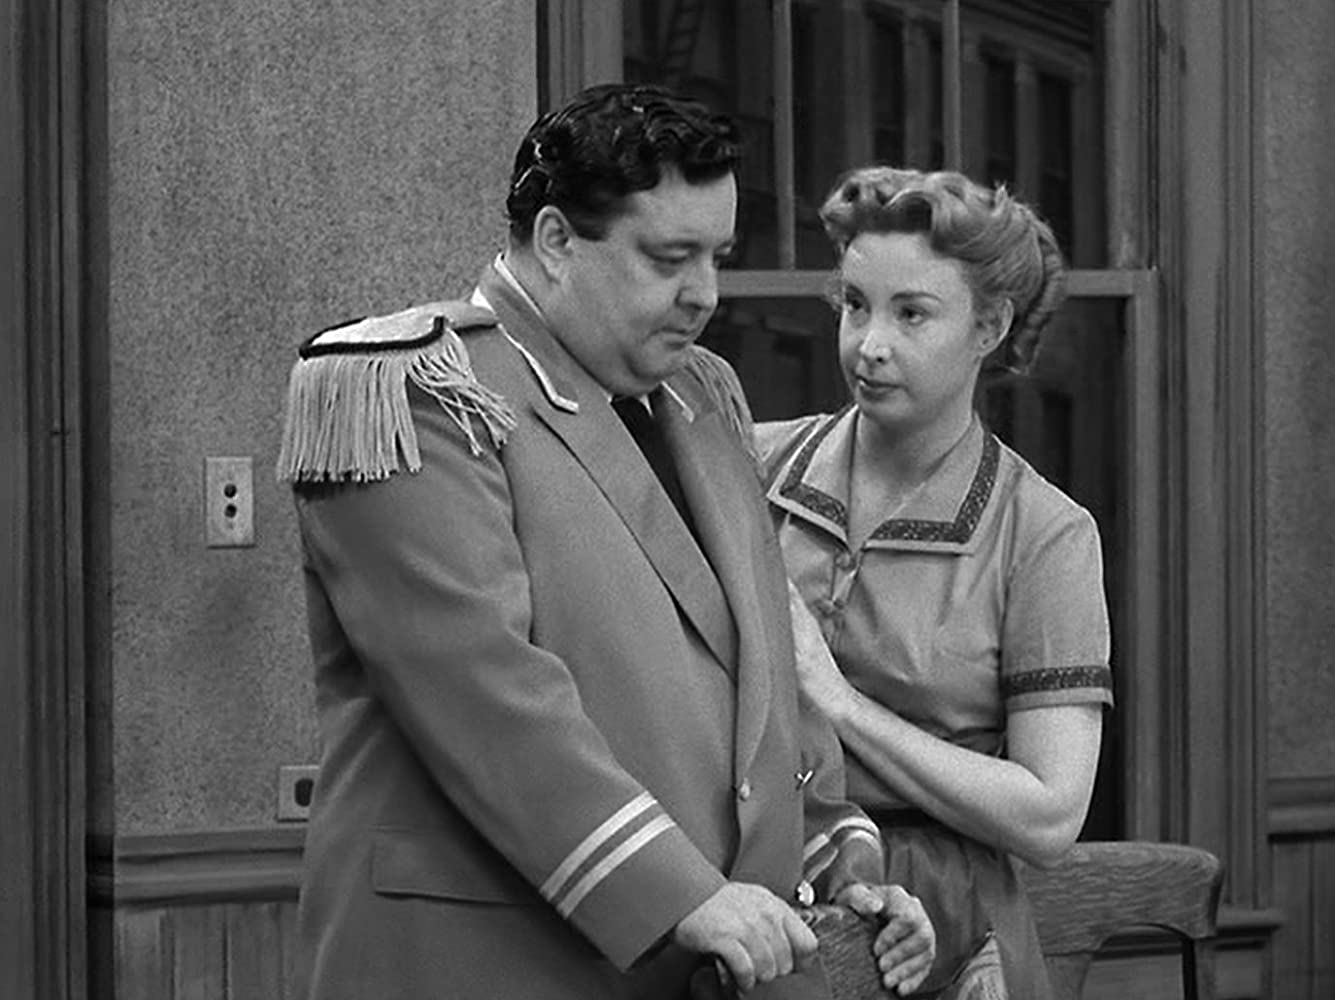 The Honeymooners (1955)